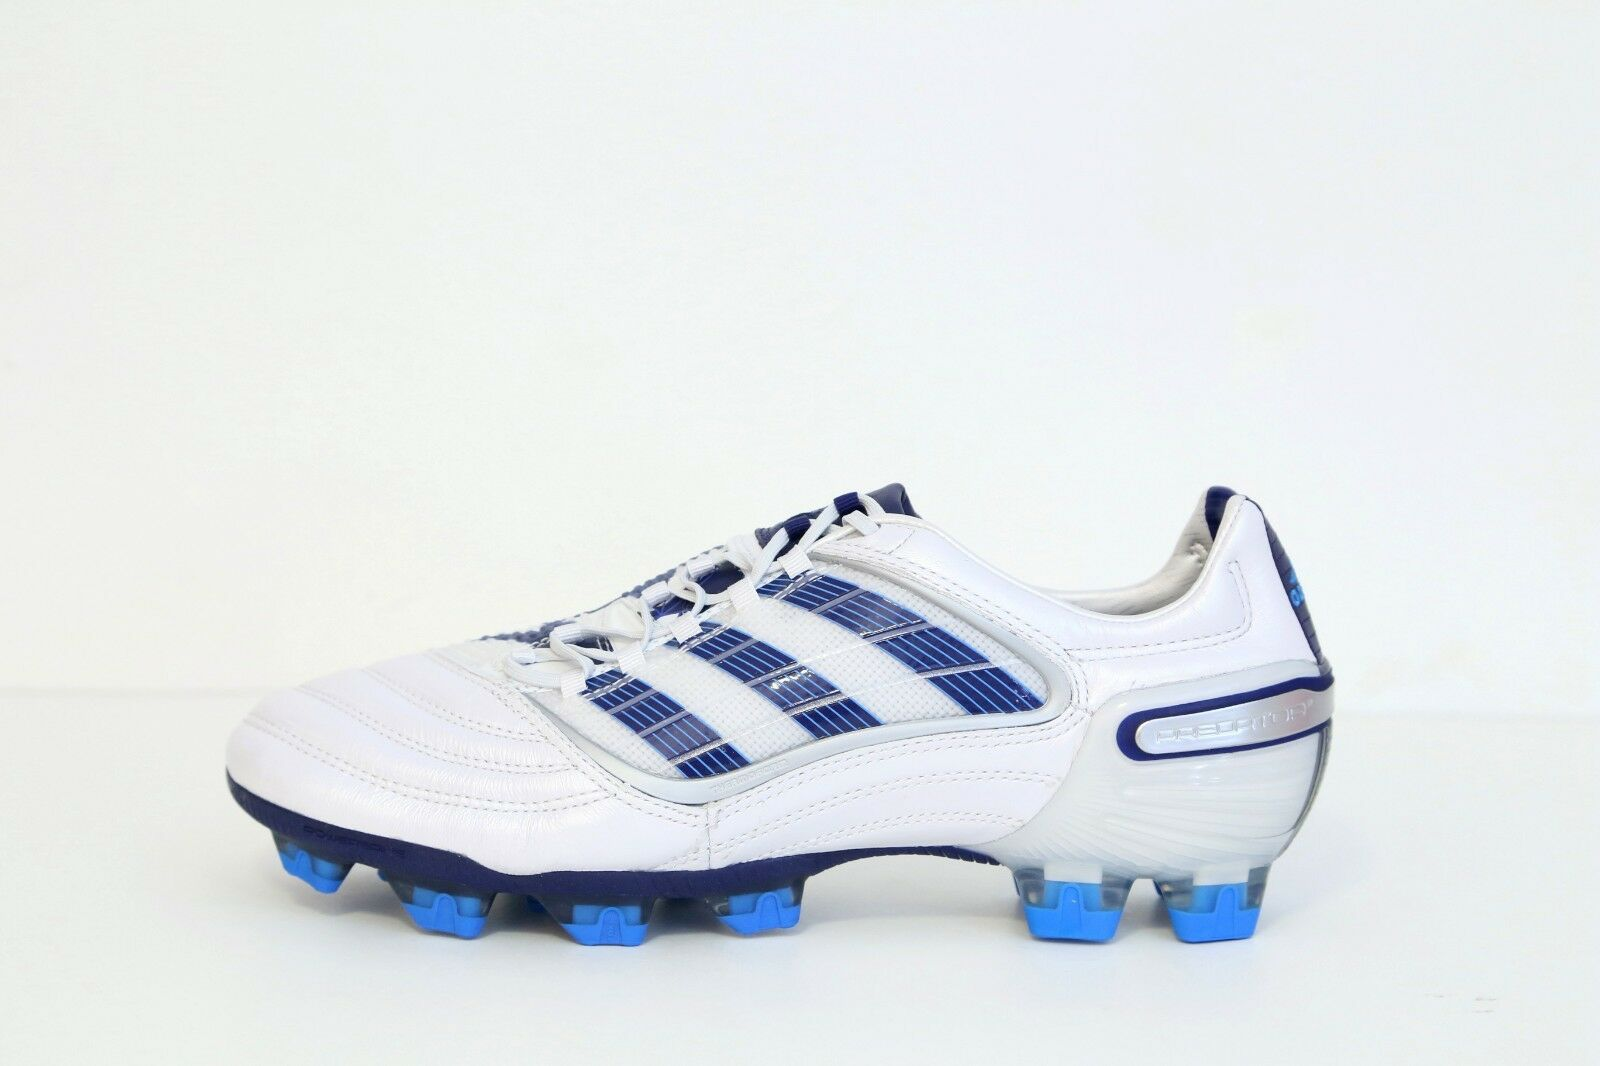 NEW - ADIDAS PREDATOR X TRX FG - CHAMPIONS CHAMPIONS CHAMPIONS LEAGUE LIMITED - LEATHER - SZ 9.5 US a51126